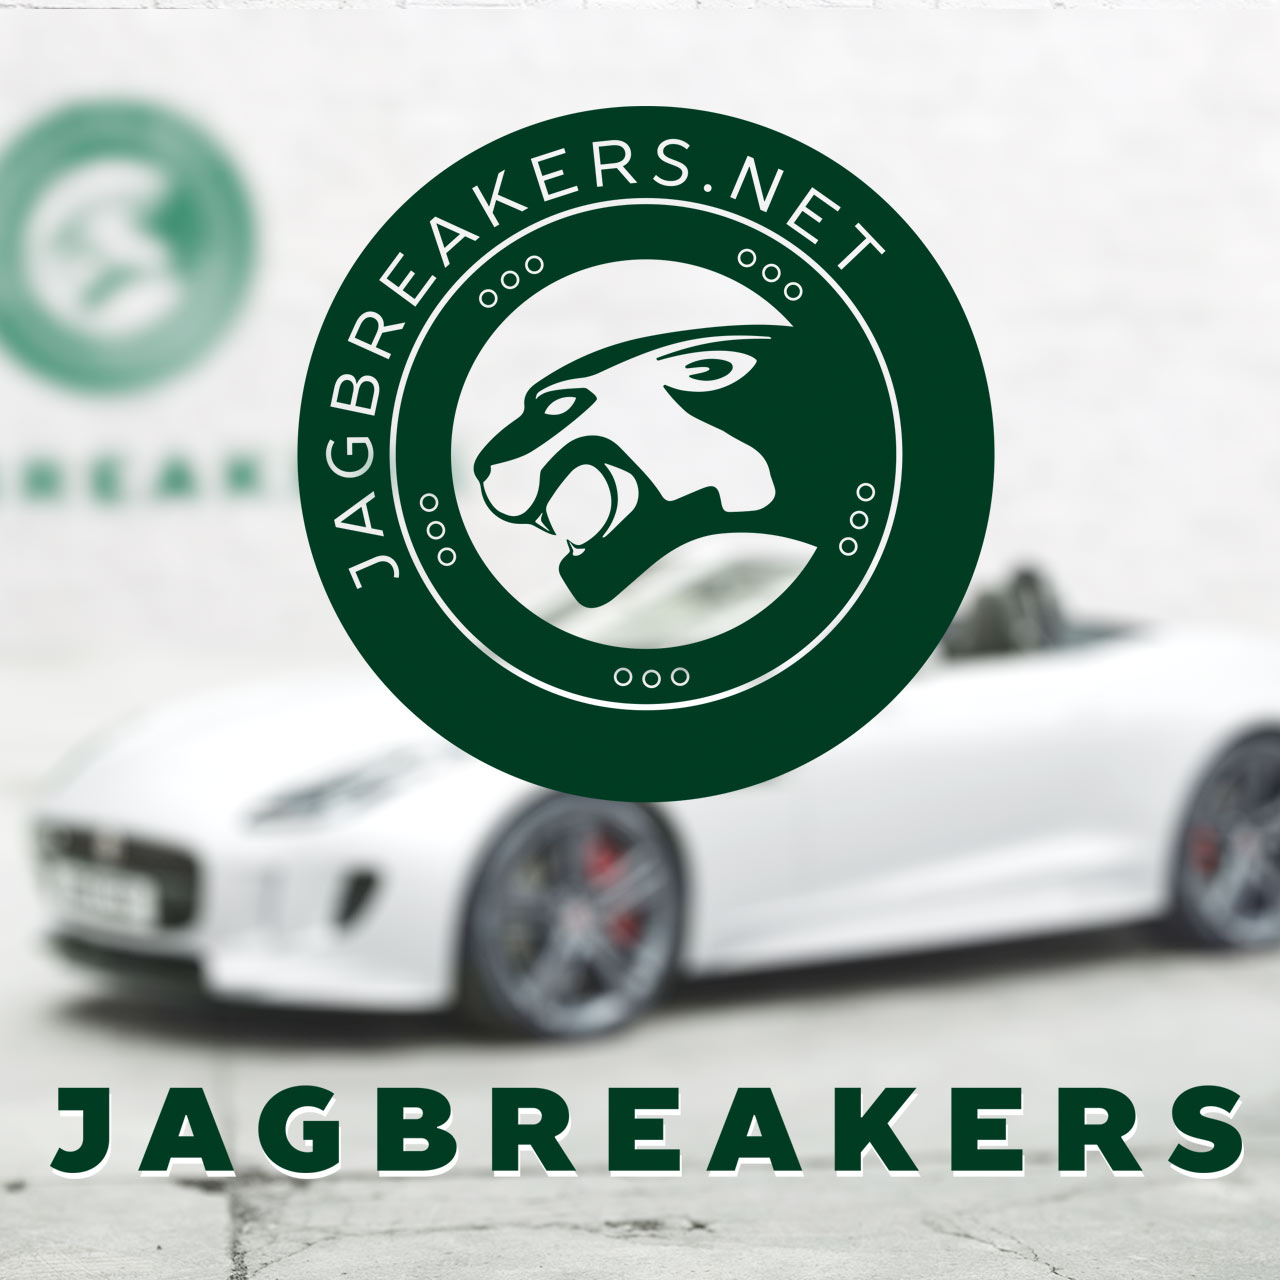 Jagbreakers The Best Place For Quality Used And New Jaguar Car Parts